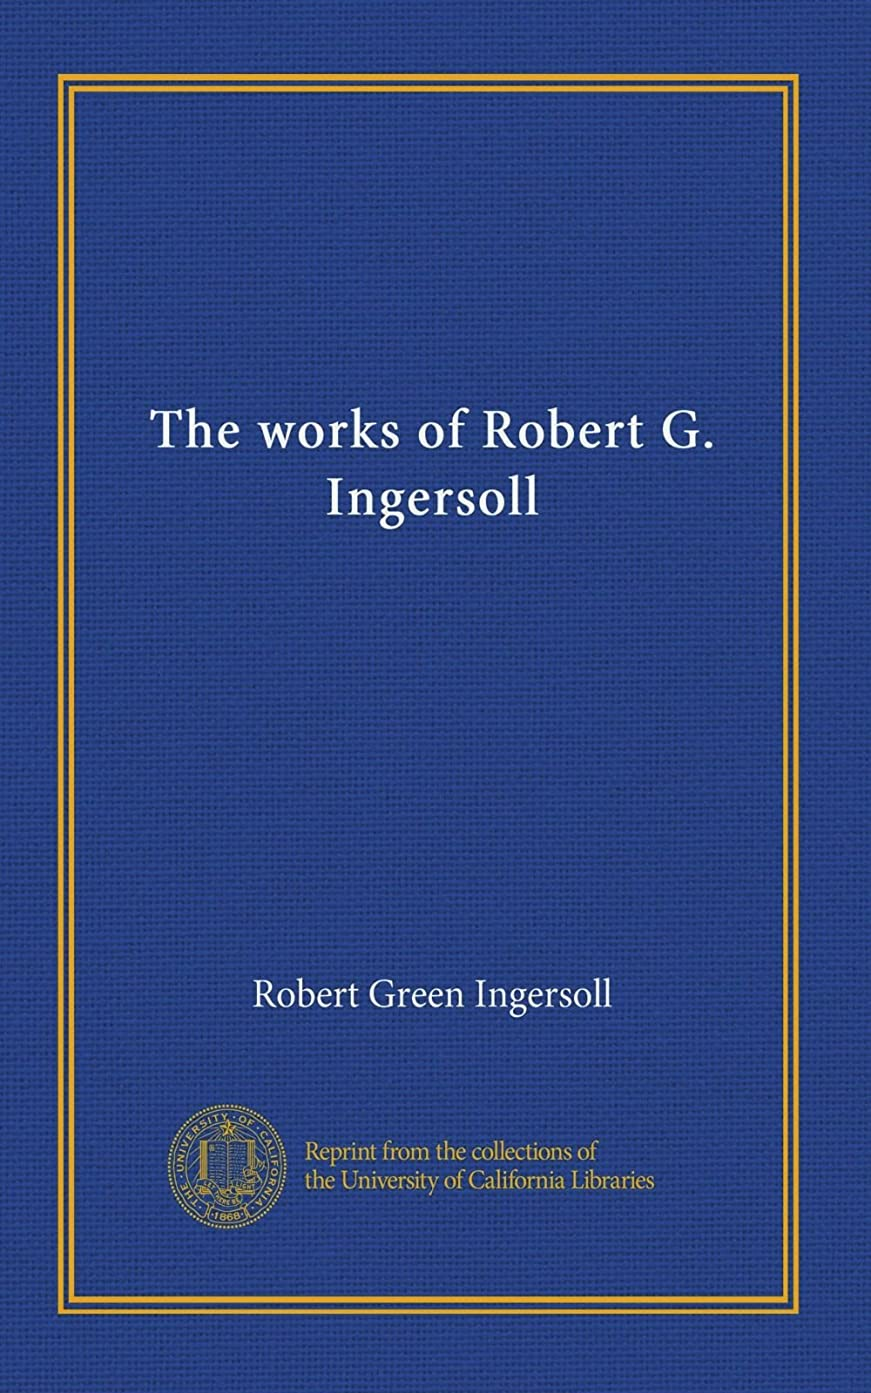 見物人ワームブースThe works of Robert G. Ingersoll (v.03)